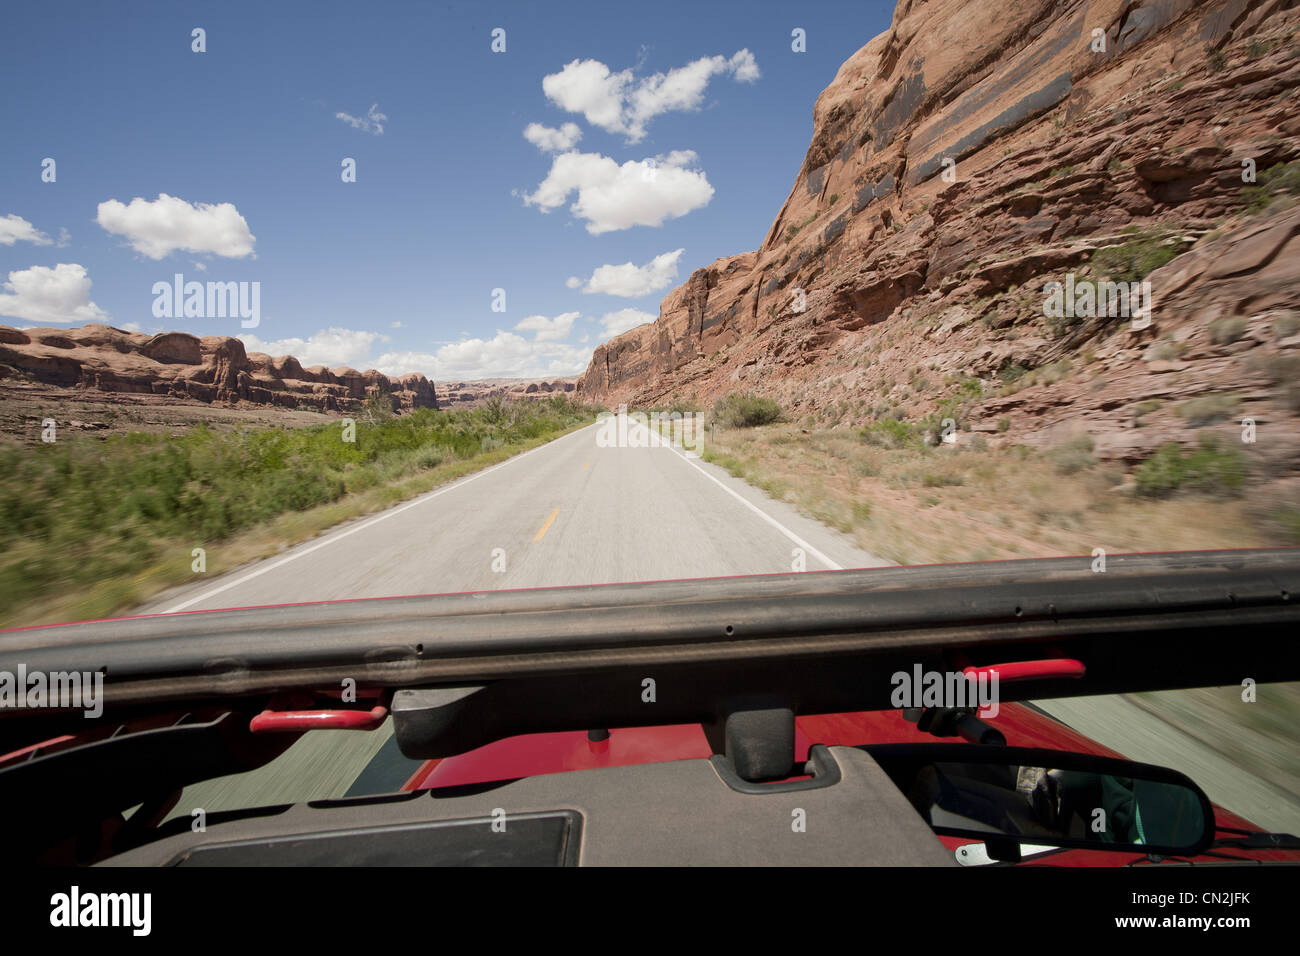 View of Remote Highway Across Red Rocks Through Jeep Sunroof, Moab, Utah, USA - Stock Image